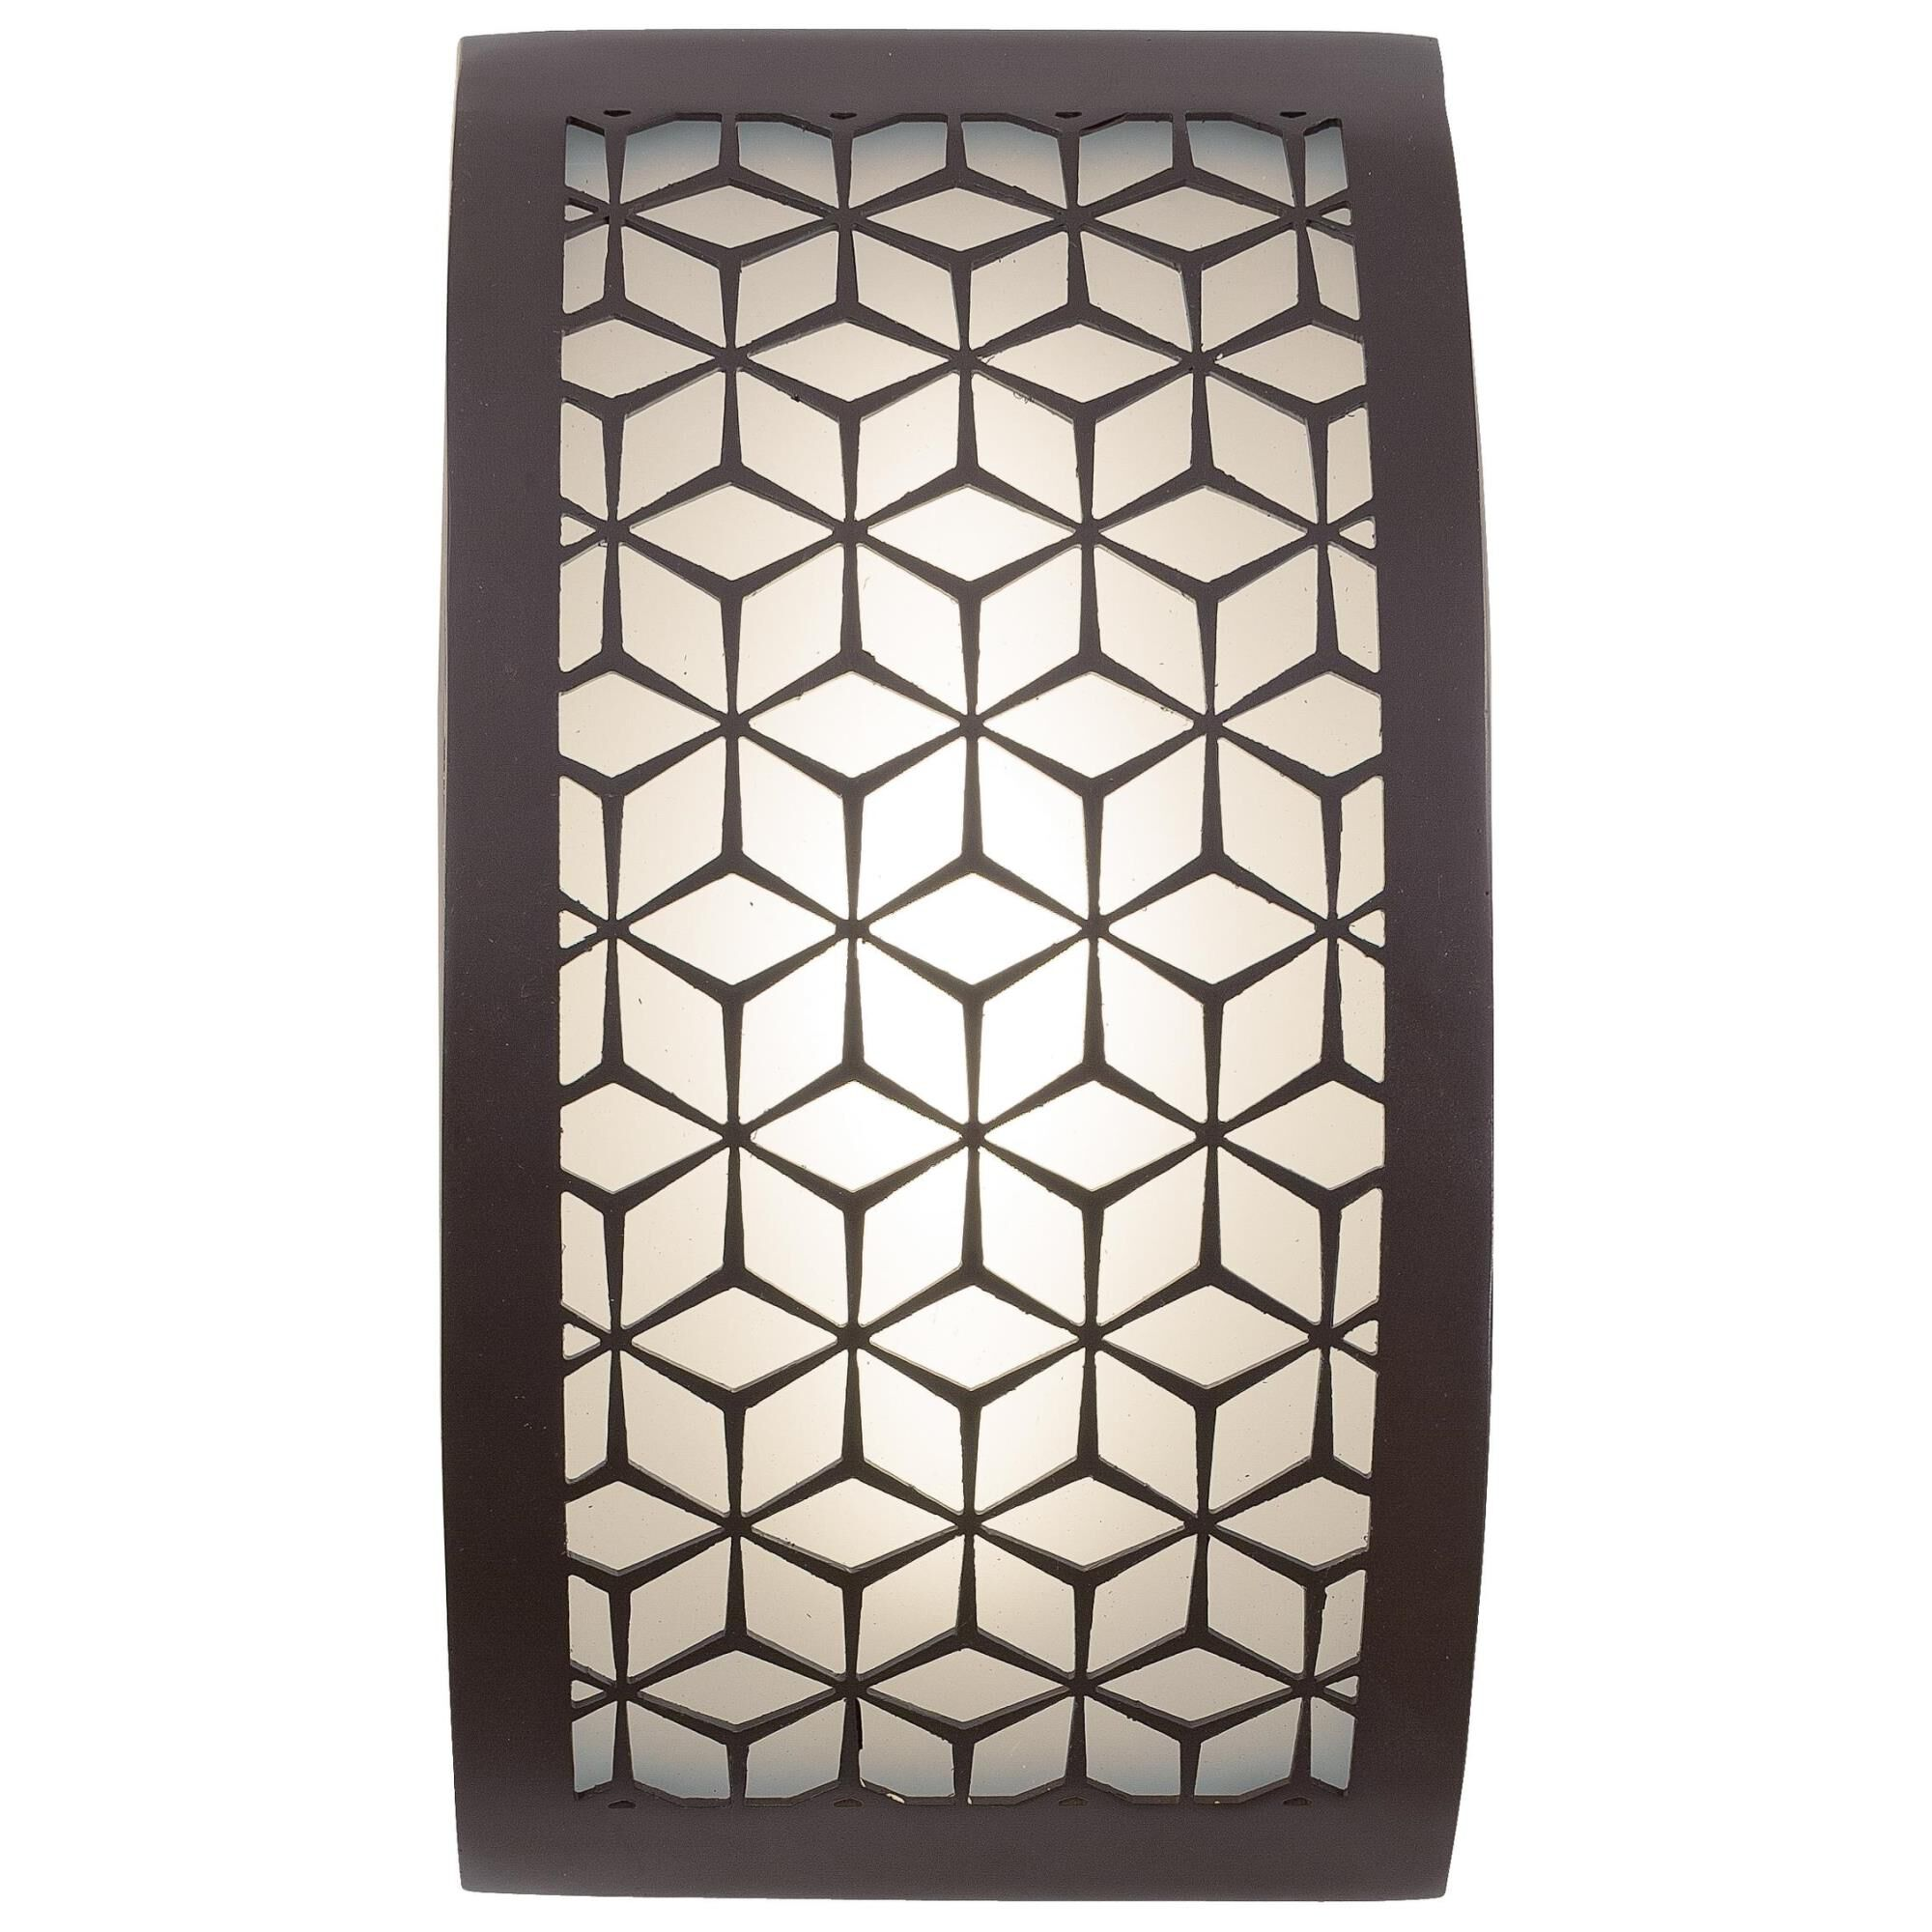 Kovacs Copula 9 Inch Tall 1 Light Led Outdoor Wall Light Copula - P1238-246-l - Art Deco